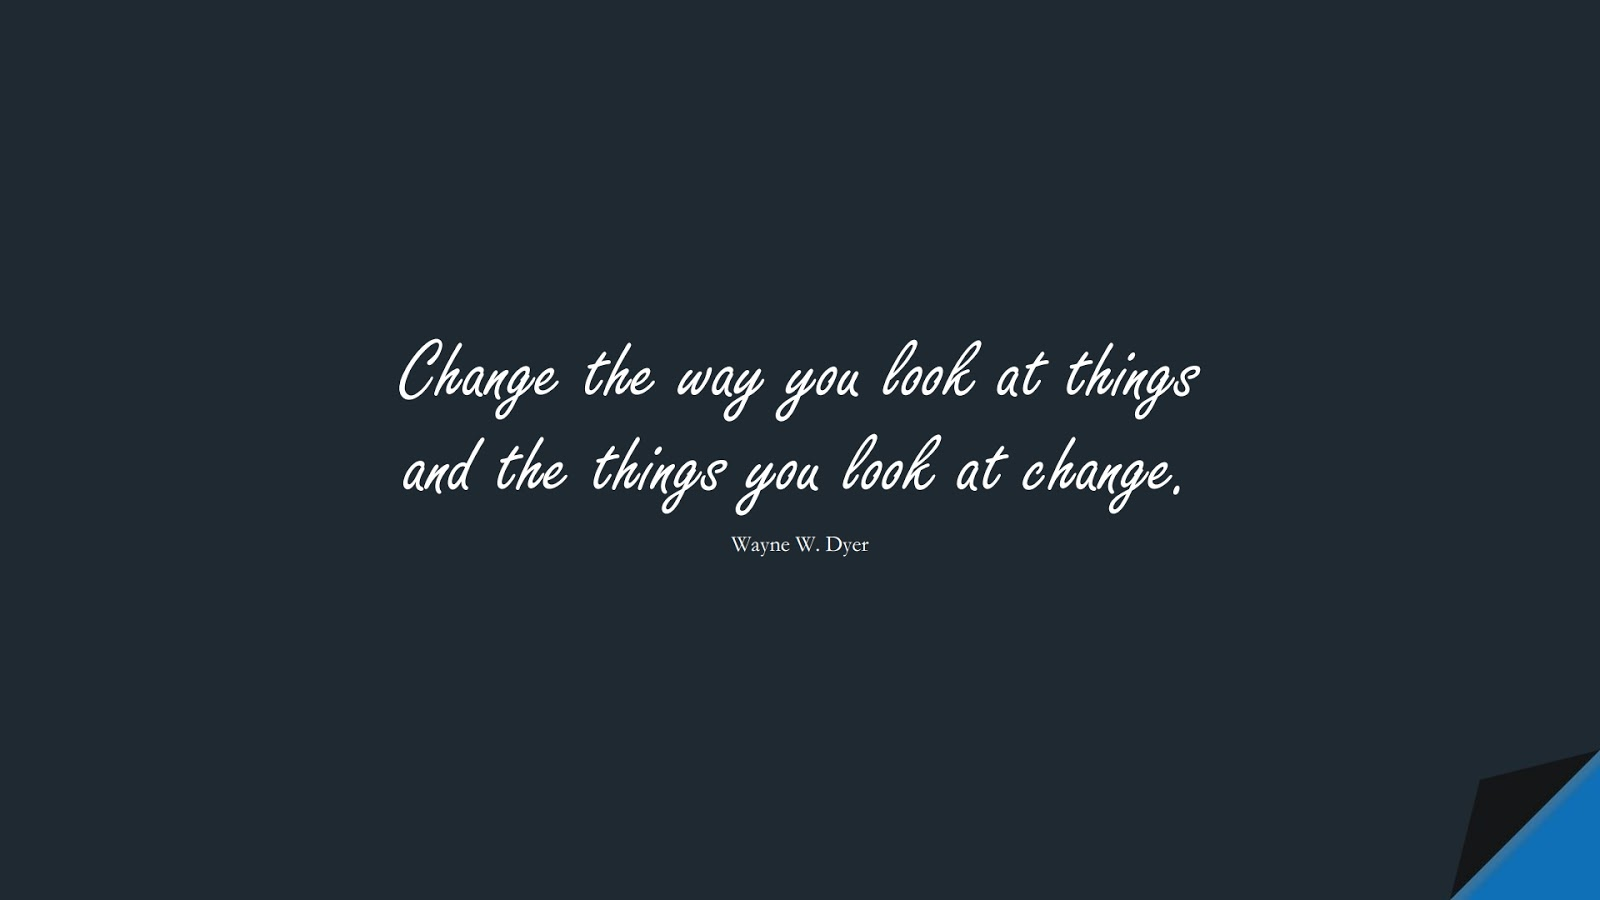 Change the way you look at things and the things you look at change. (Wayne W. Dyer);  #PositiveQuotes